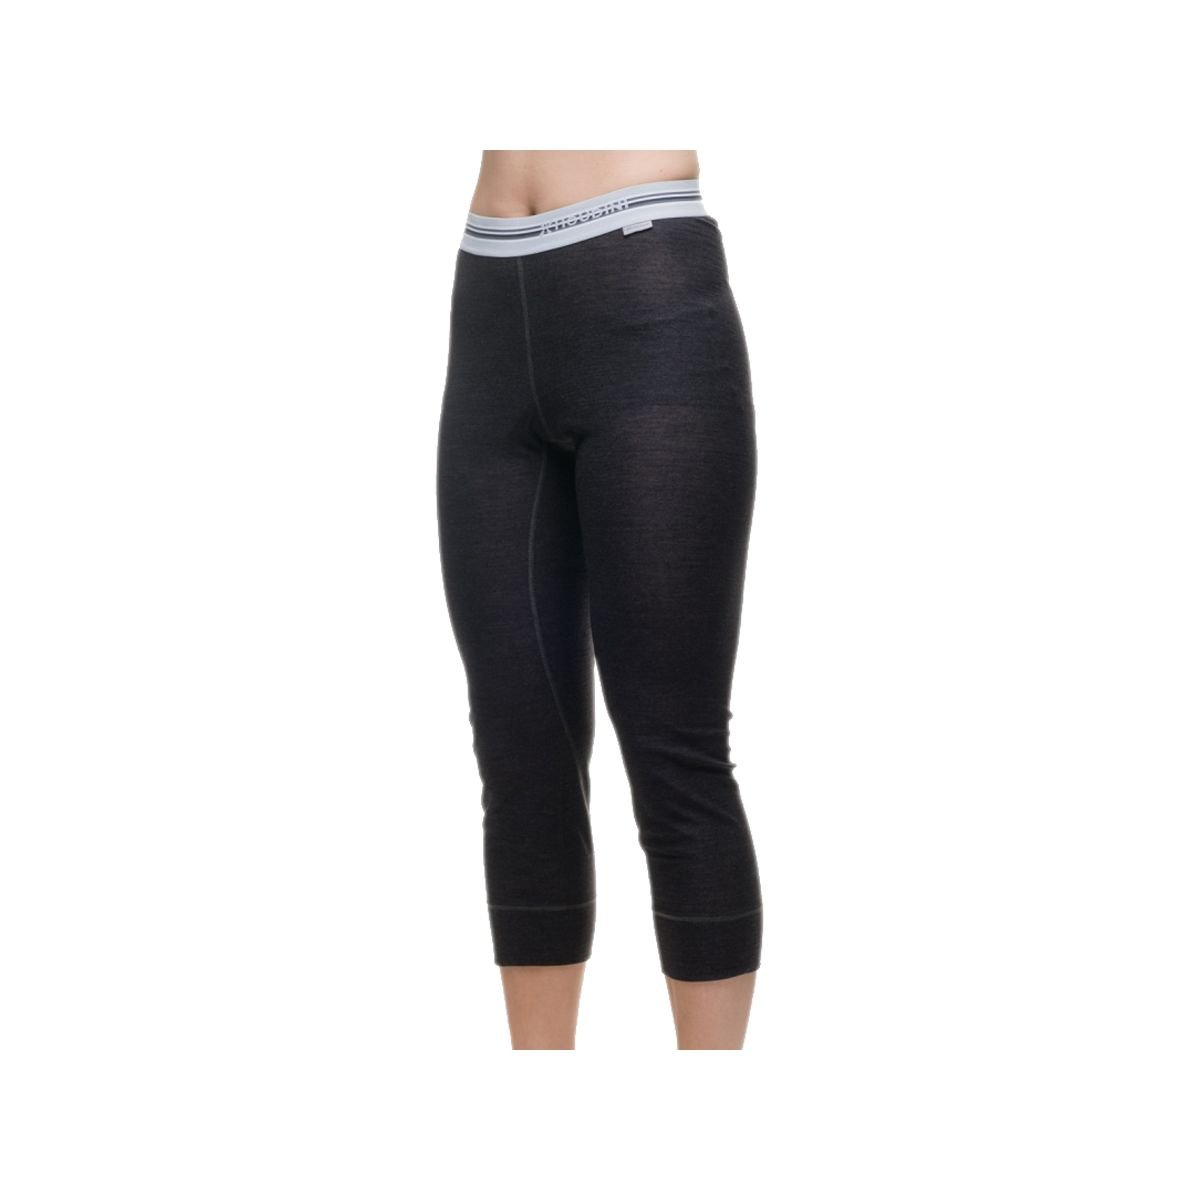 Houdini Damen Funktionsunterwäsche Ws Airborn Alpine Tights